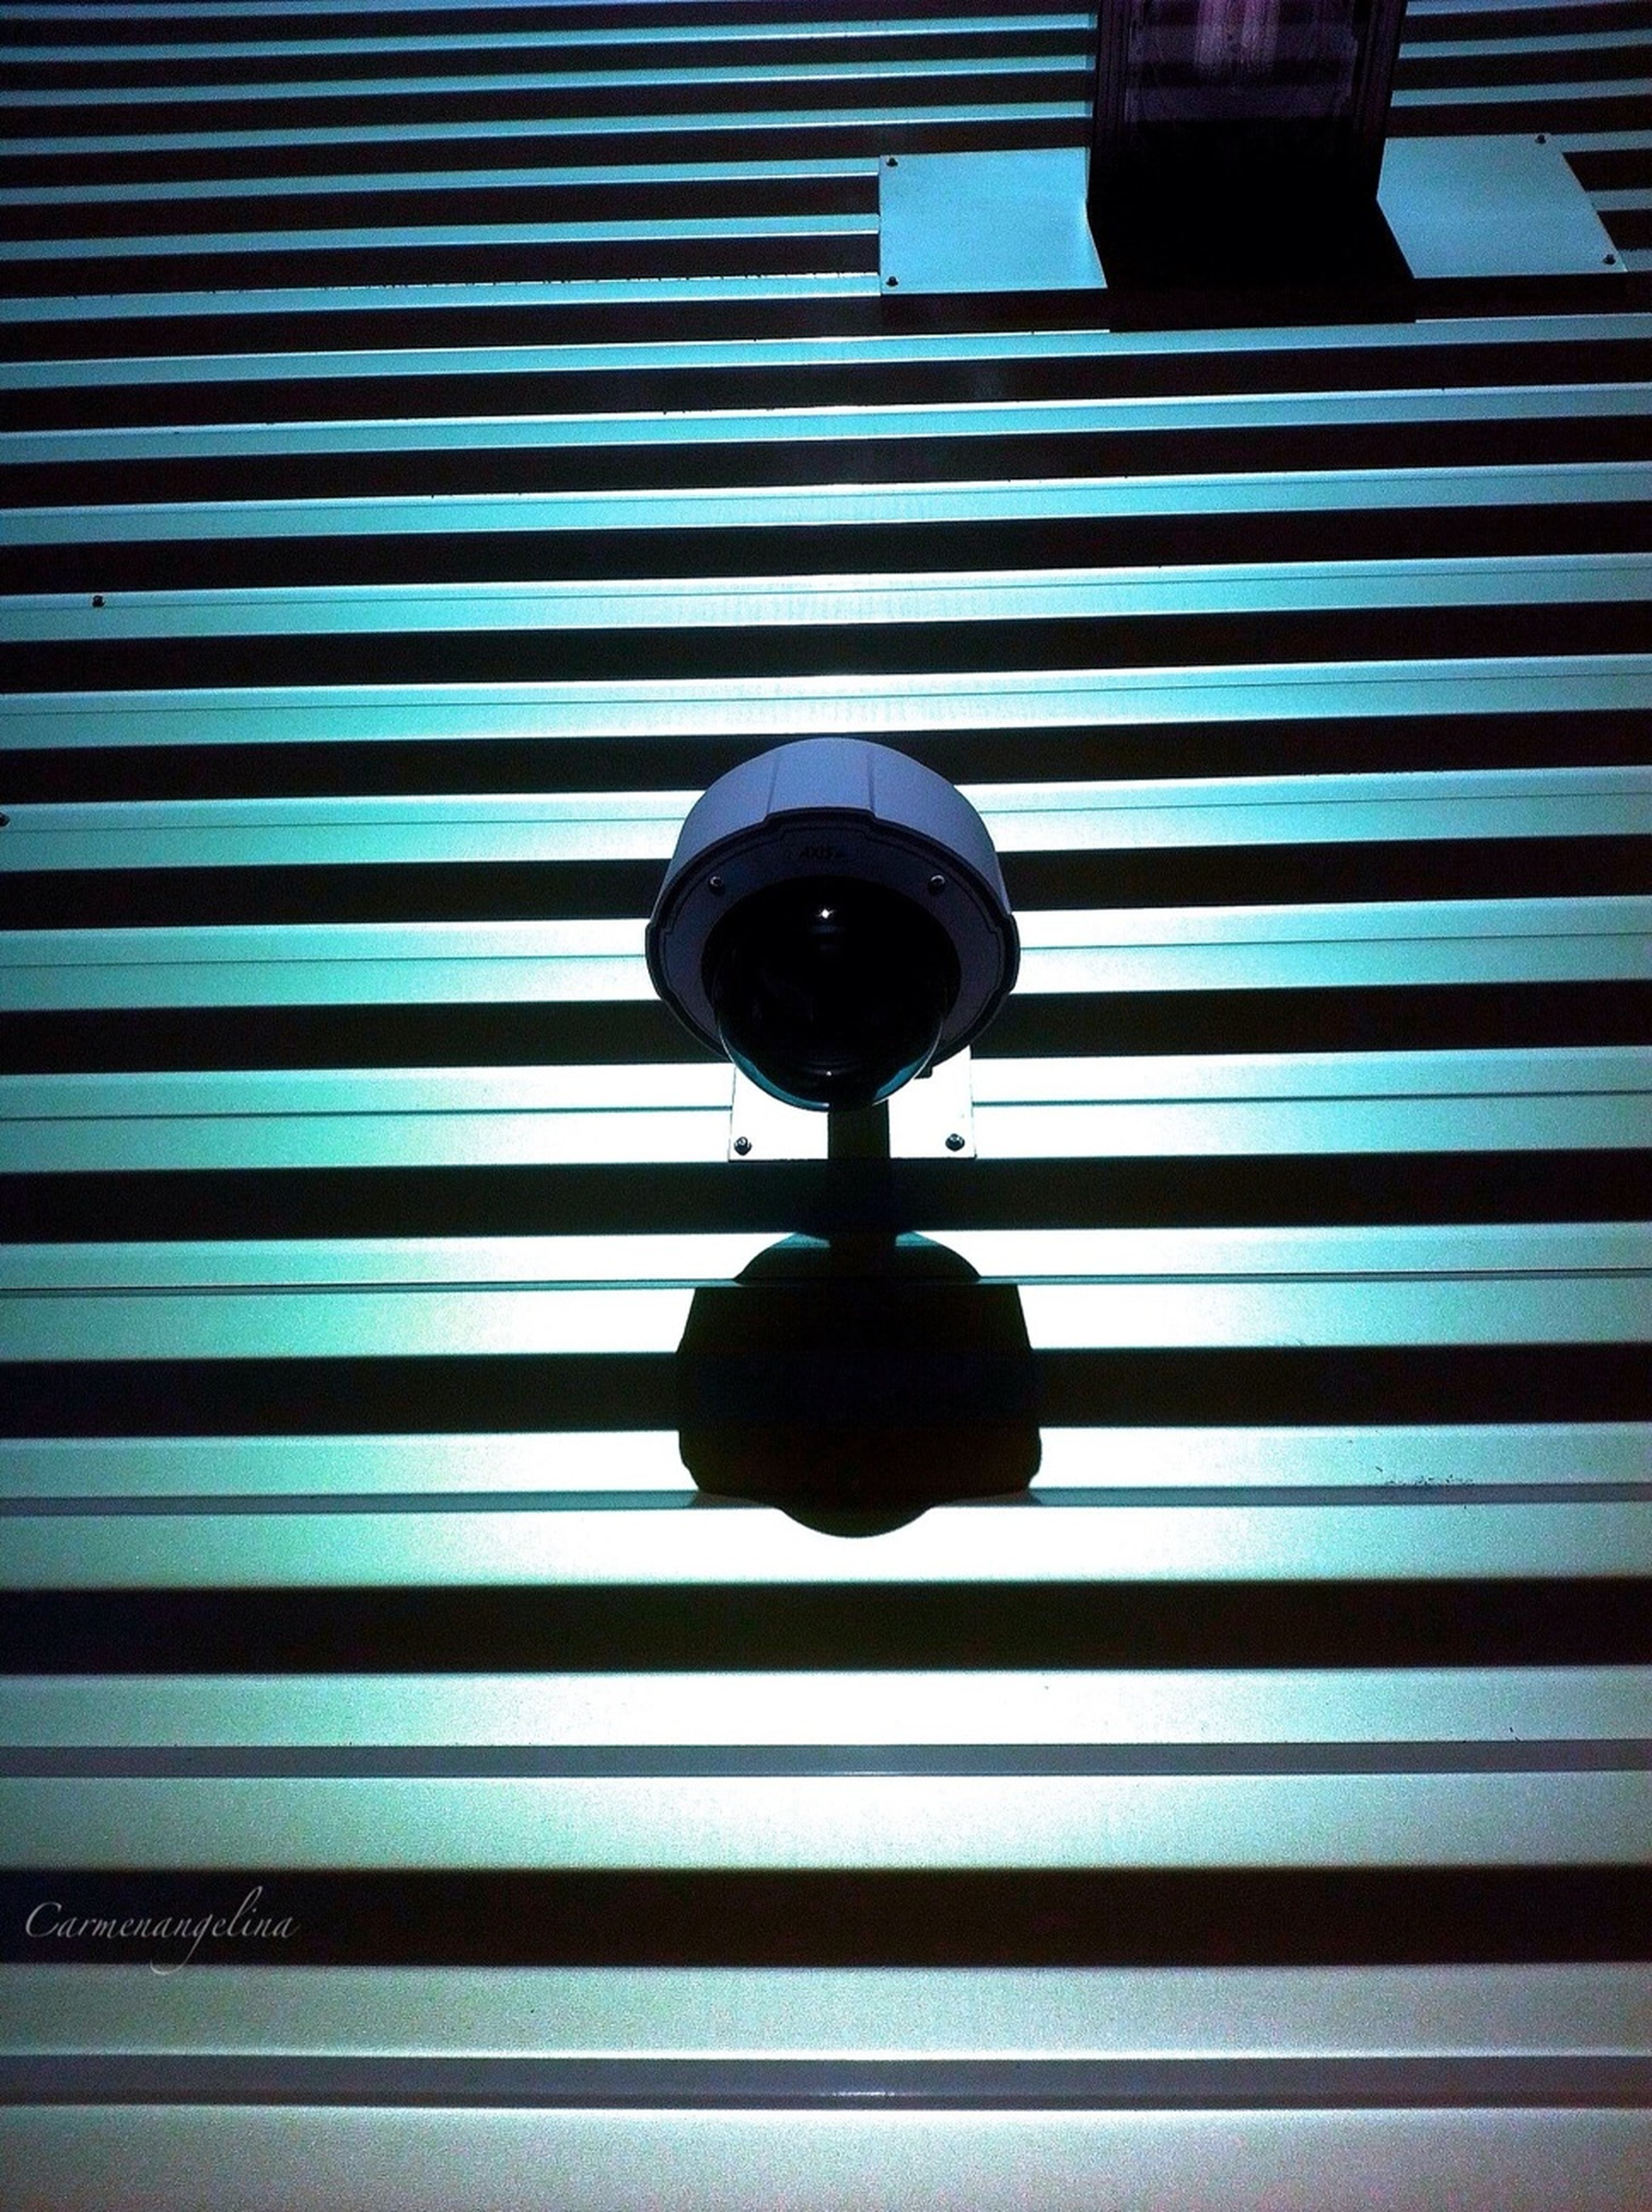 architecture, built structure, building exterior, low angle view, lighting equipment, pattern, window, modern, blue, railing, indoors, building, no people, circle, wall - building feature, illuminated, metal, glass - material, day